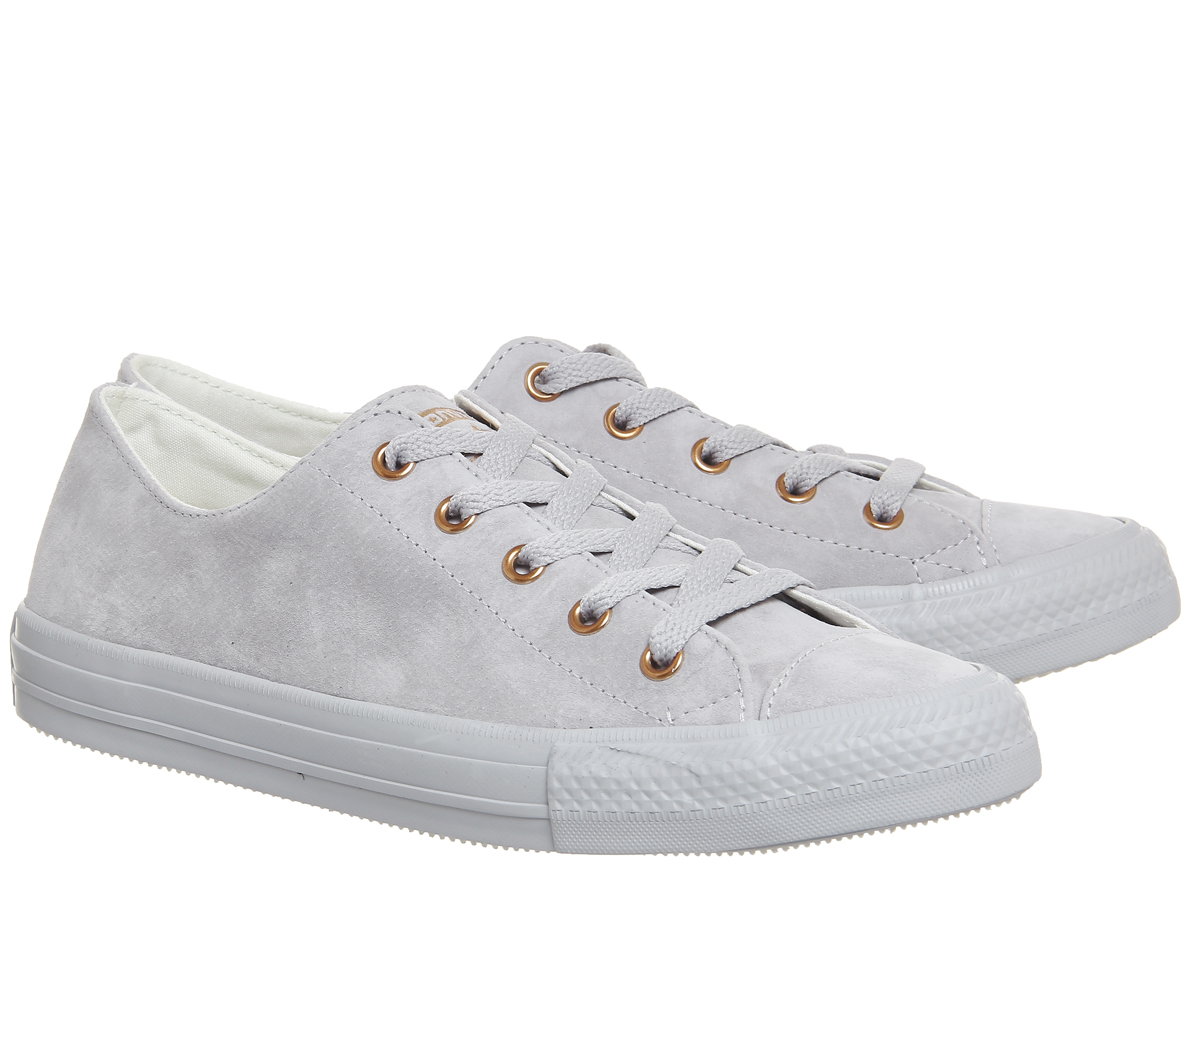 39400dae5bb6 sweden converse trainers all star hi leather 2452123057 ash grey rose gold  exclusive hers dd966 246c3  hot unisex converse cta gemma low grey ash grey  5113d ...